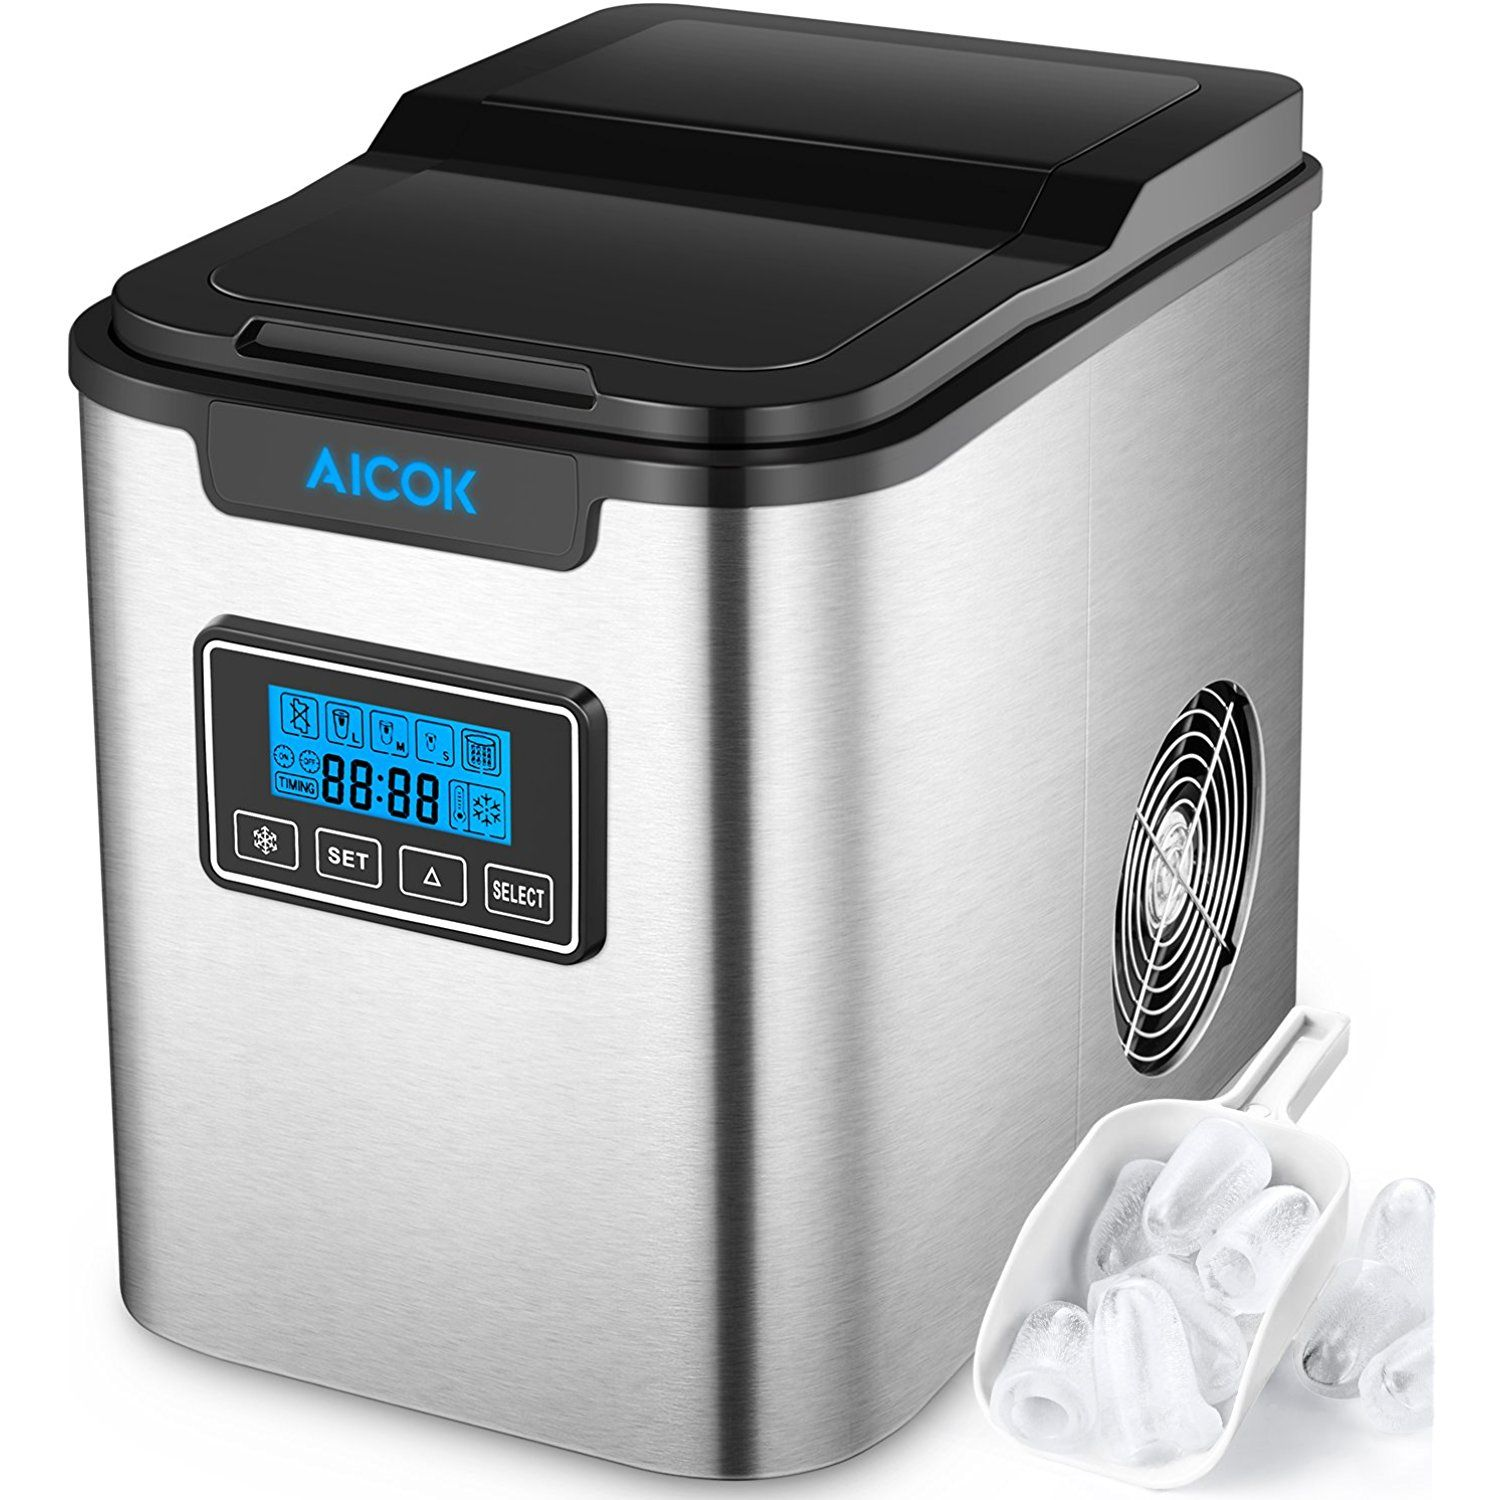 Aicok Ice Maker Counter Top Ice Maker Machine Portable